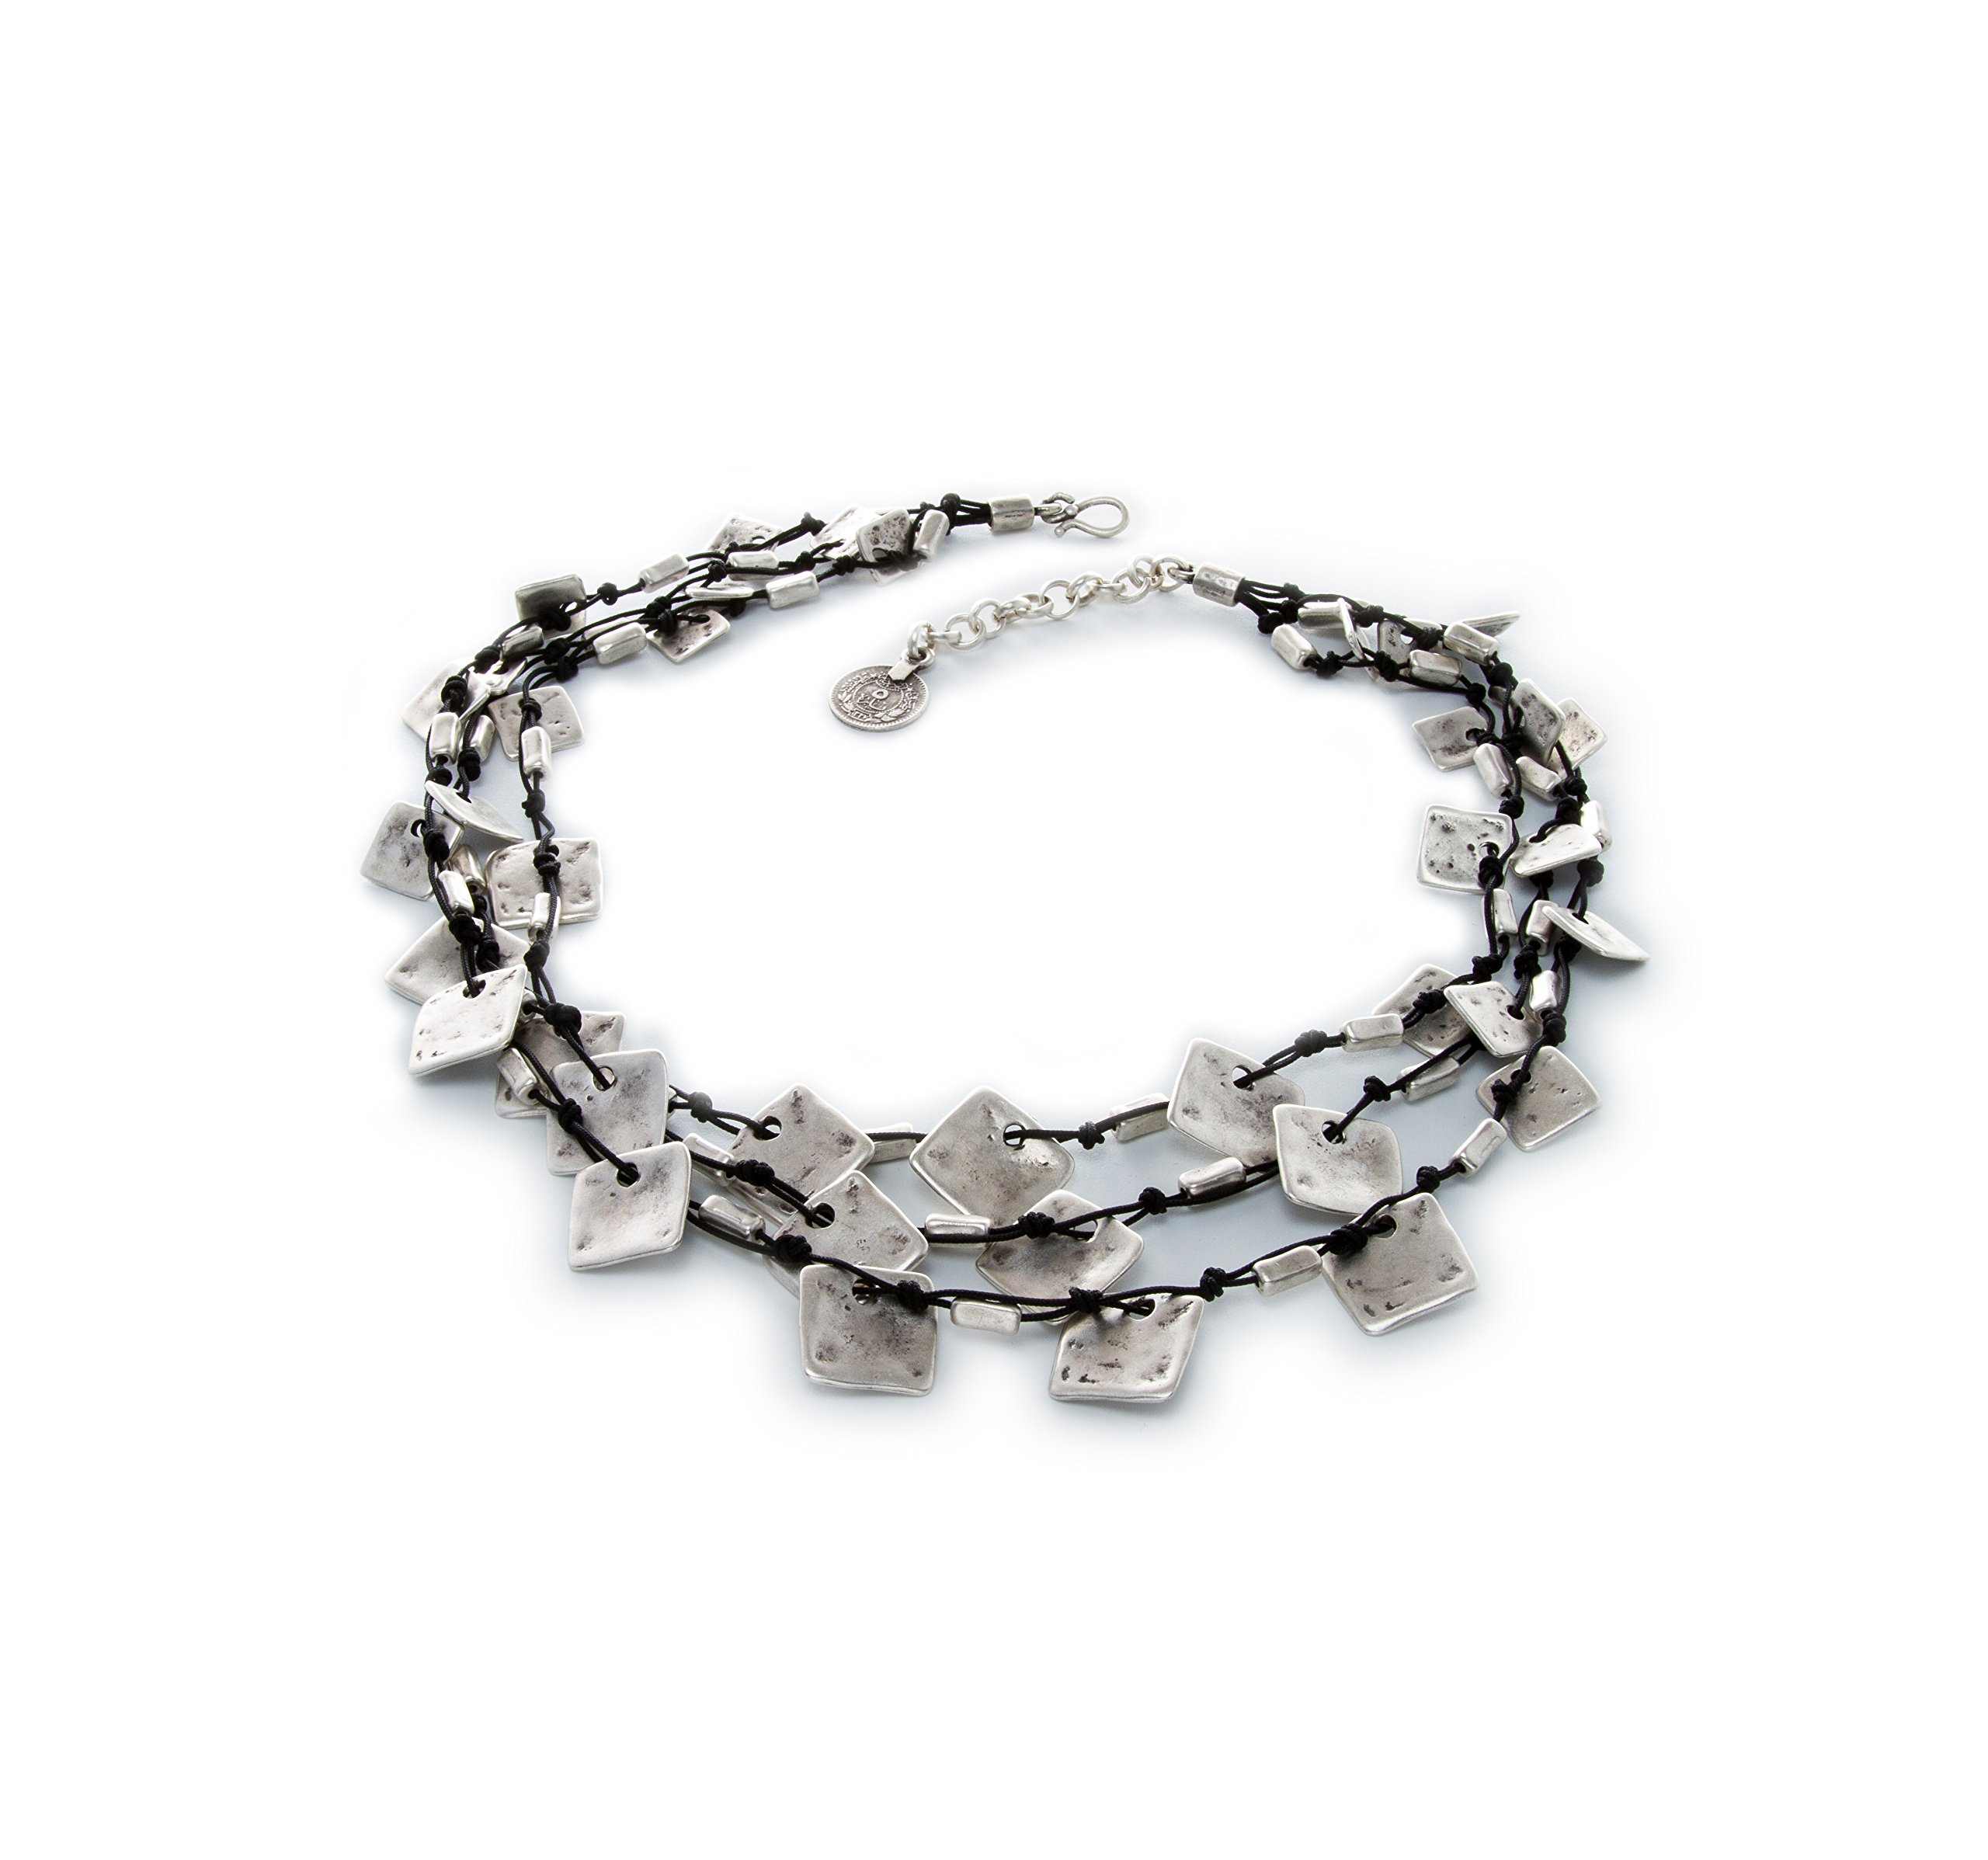 Fashion Jewelry 2017 Collection - Silver plated antique hand crafted - Necklace 19'' to 20'' length - 1033